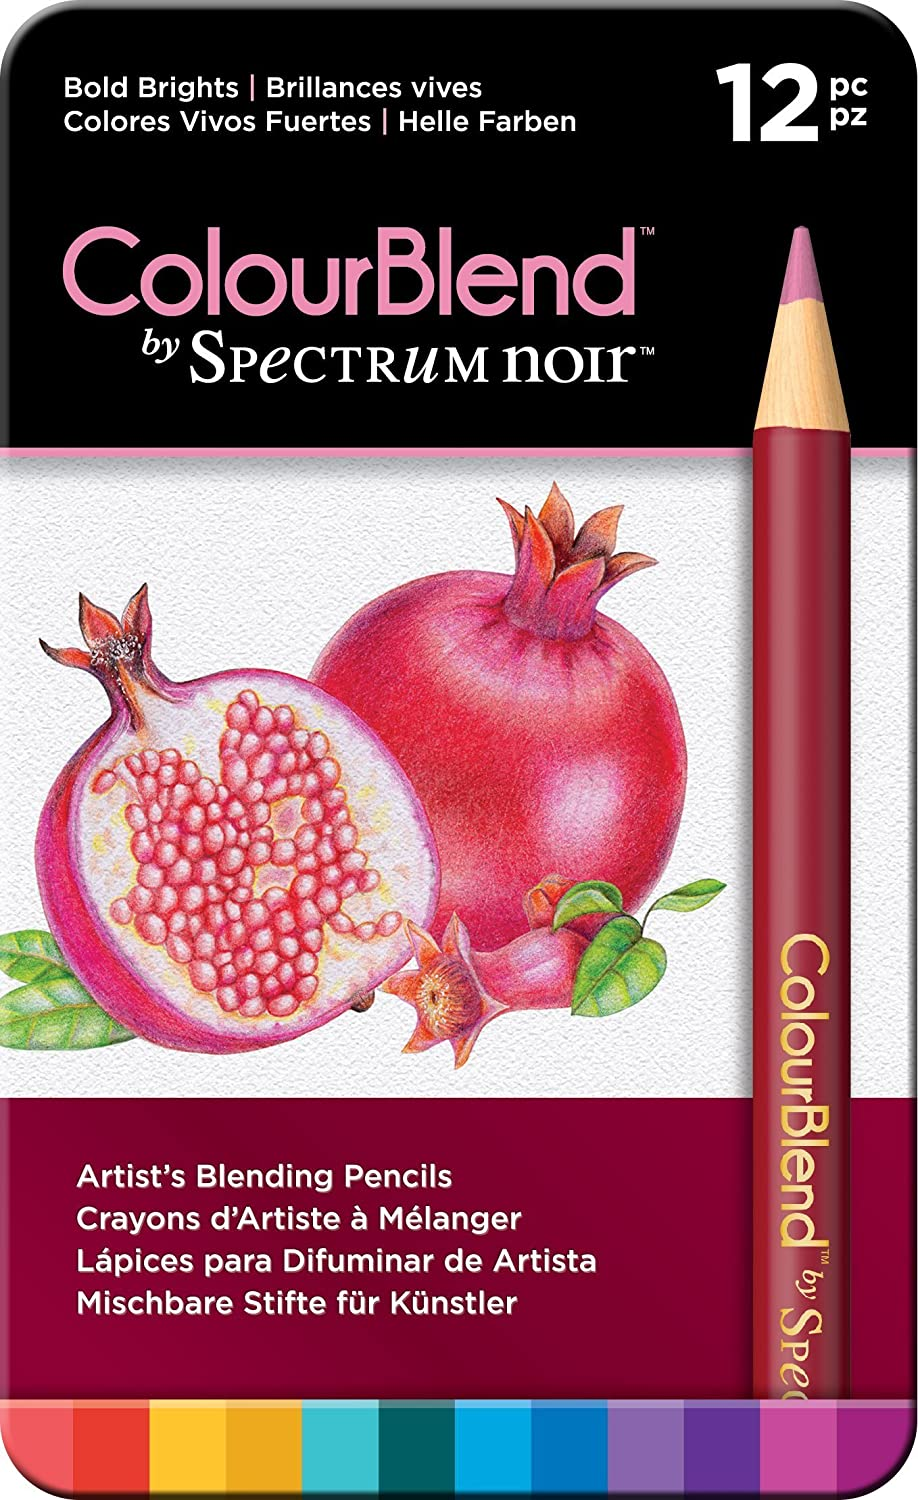 Spectrum Noir Matite da sfumare Colourblend, Essentials, 24 pezzi, Legno, Soft Tints, 19 x 12 x 1.5 cm Crafter' s Companion SPECCB-SOFT12